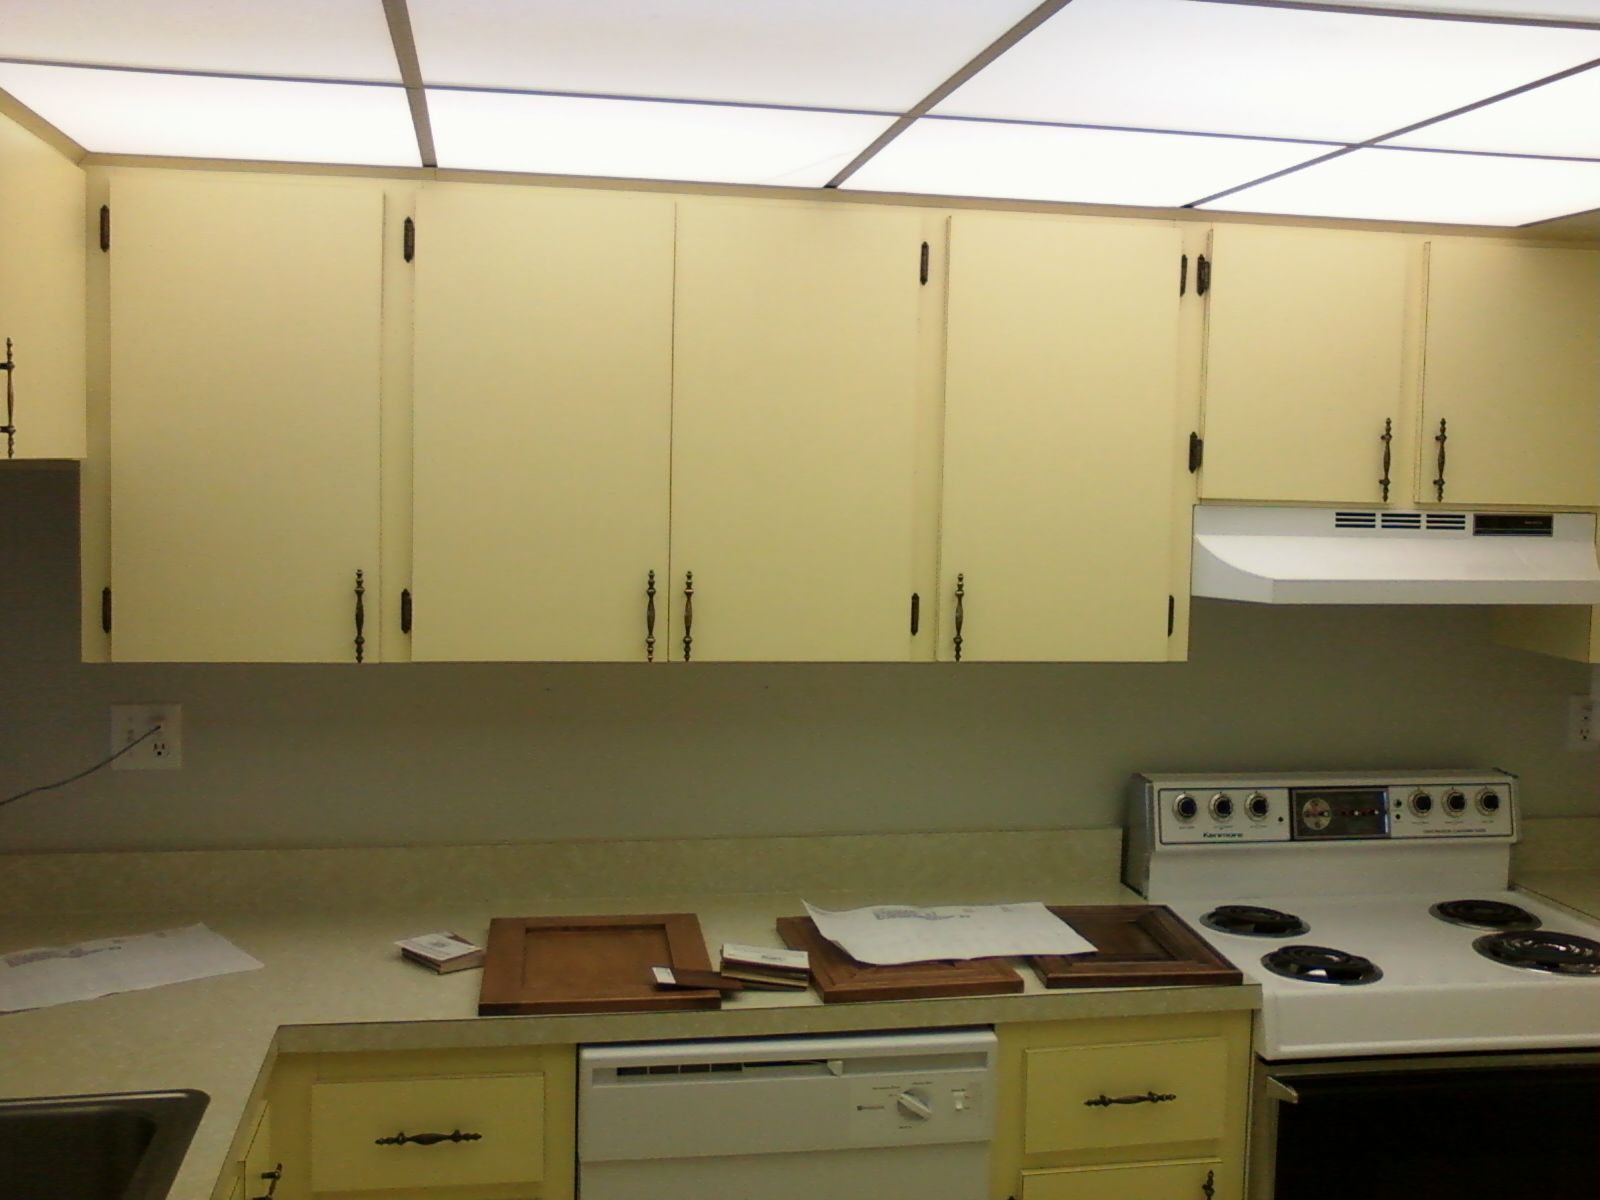 cabinet refacing photo gallery kitchen cabinet refinishing Before Cabinet Refacing